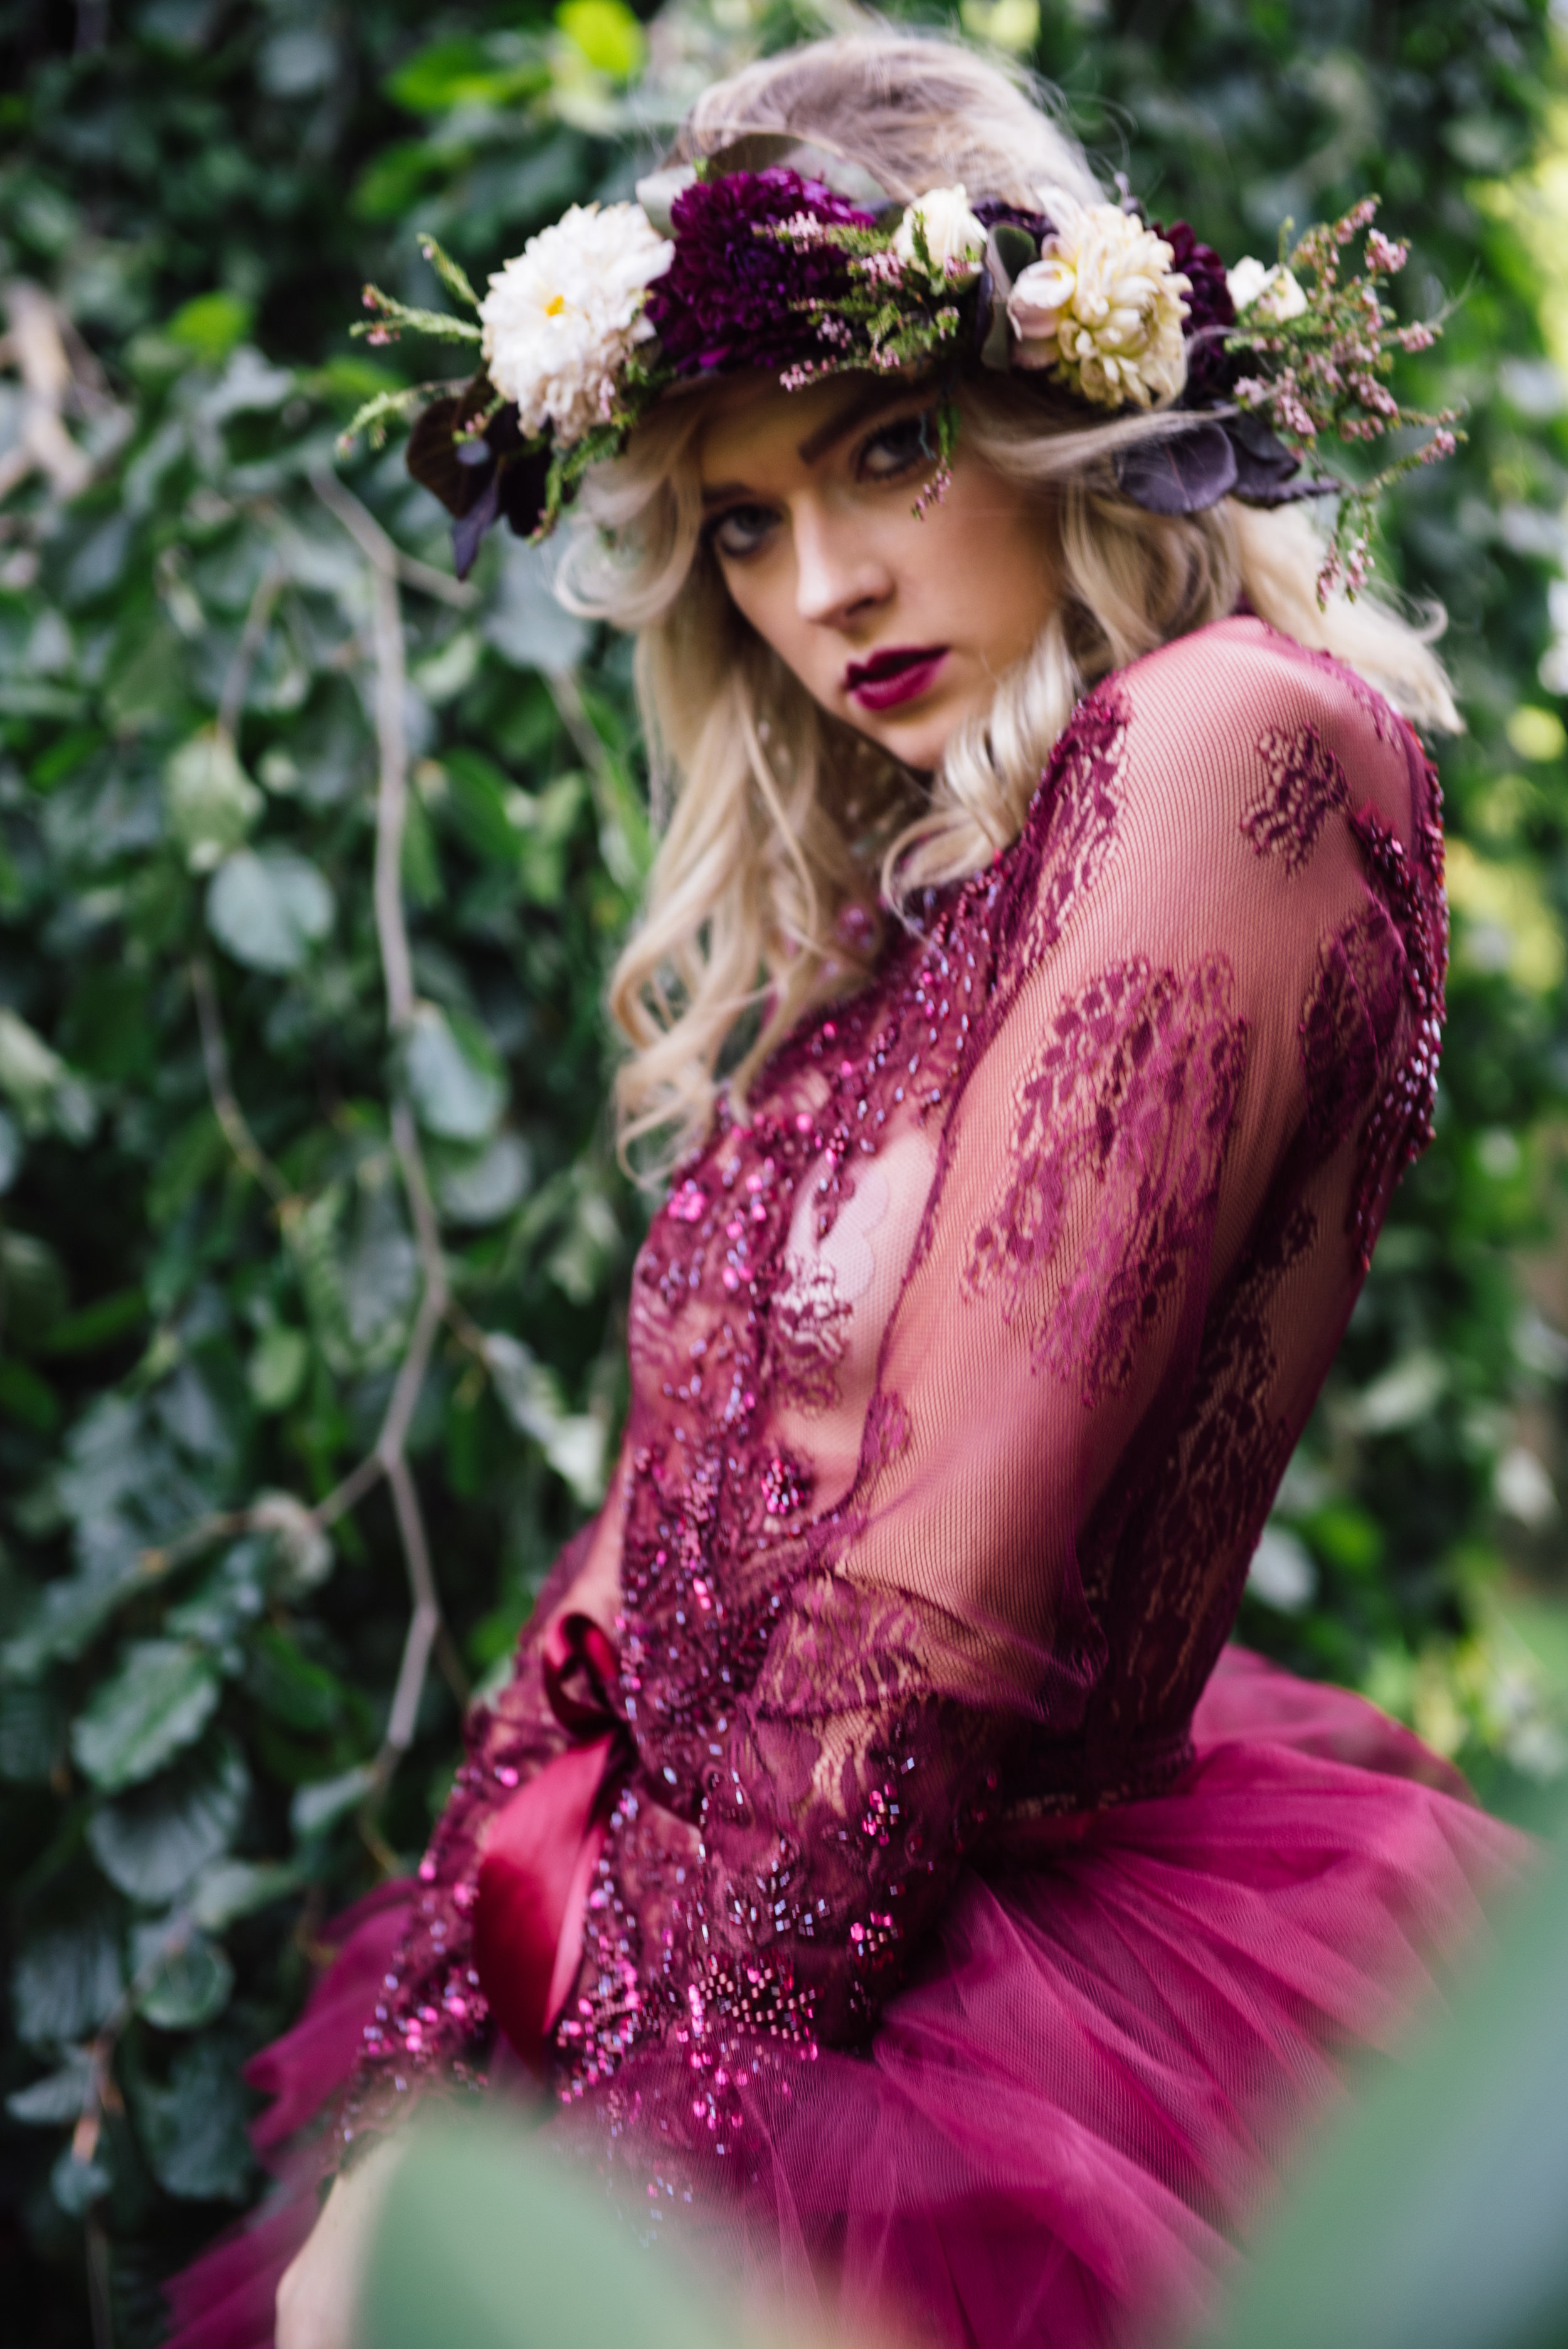 Nicole Petrie photographed by Moriah Ziman wearing Madalyn Joy Designs, hair by Taylor Fredrick, flower crown by La Tulipe, and assistance by Claire Bromley. 2017.